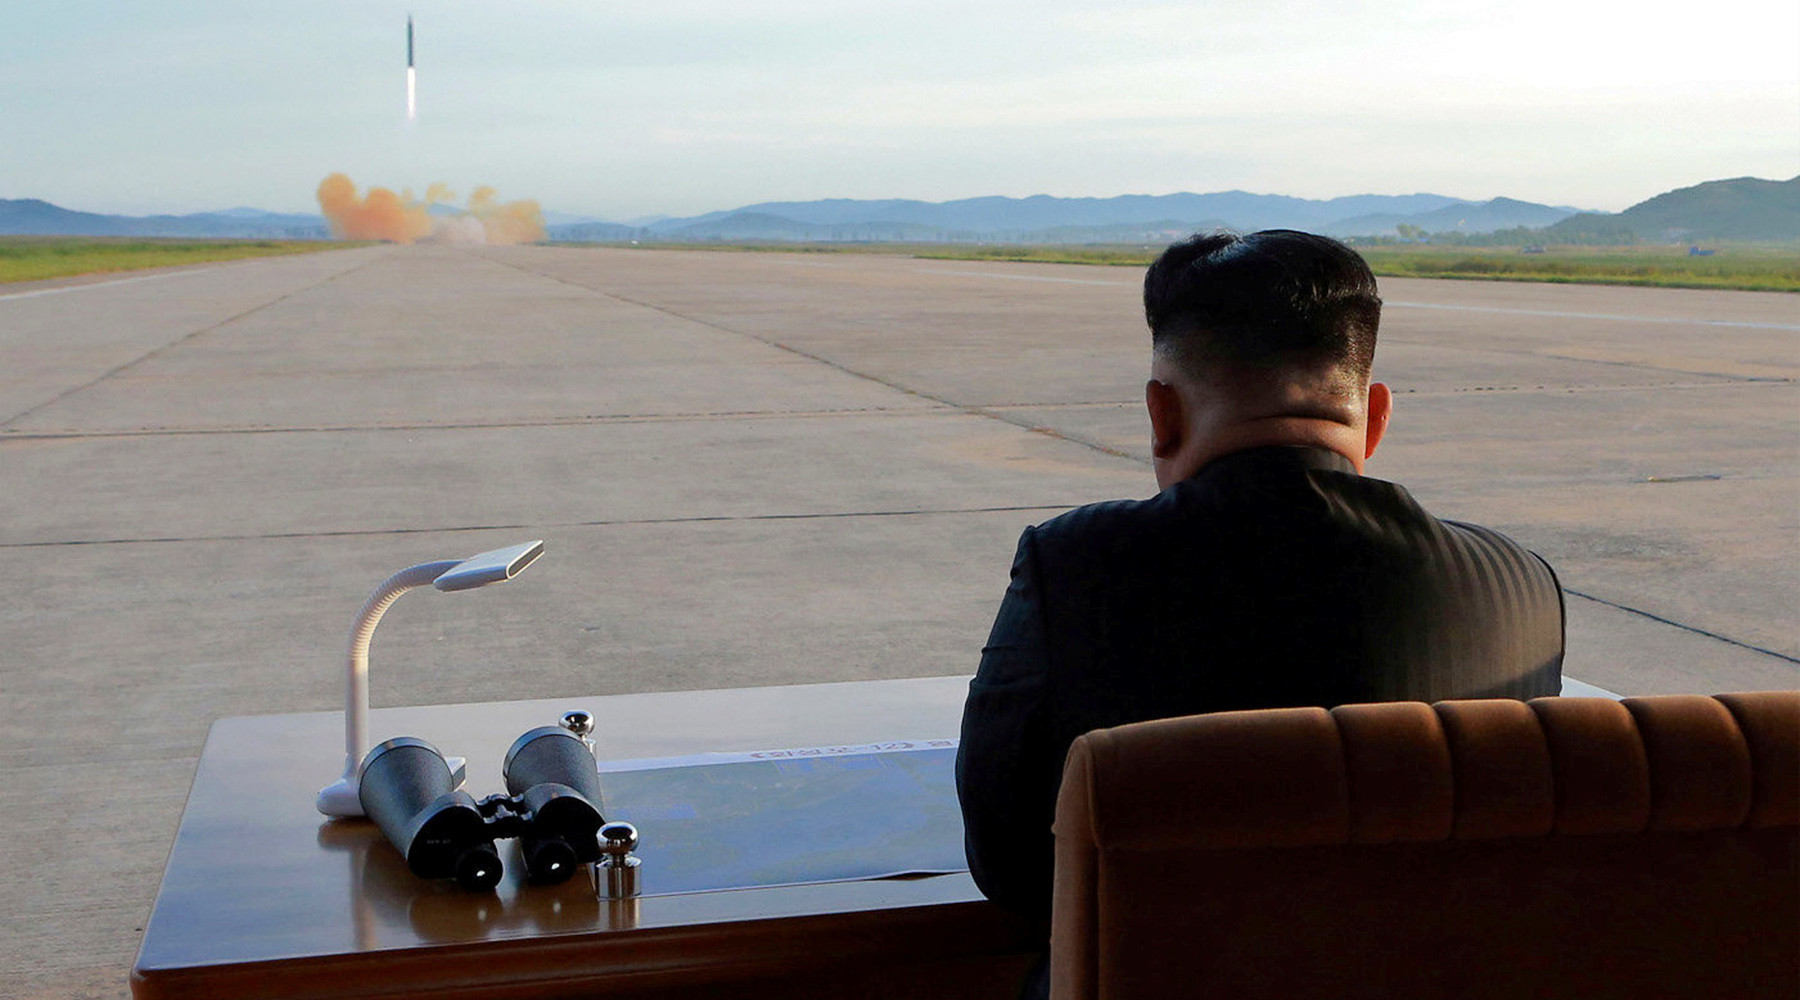 north korea a dying nation with nuclear capabilities North korea has an active nuclear with assistance from iran and several other countries, north korea north korea's chemical warfare capabilities, 38 north.